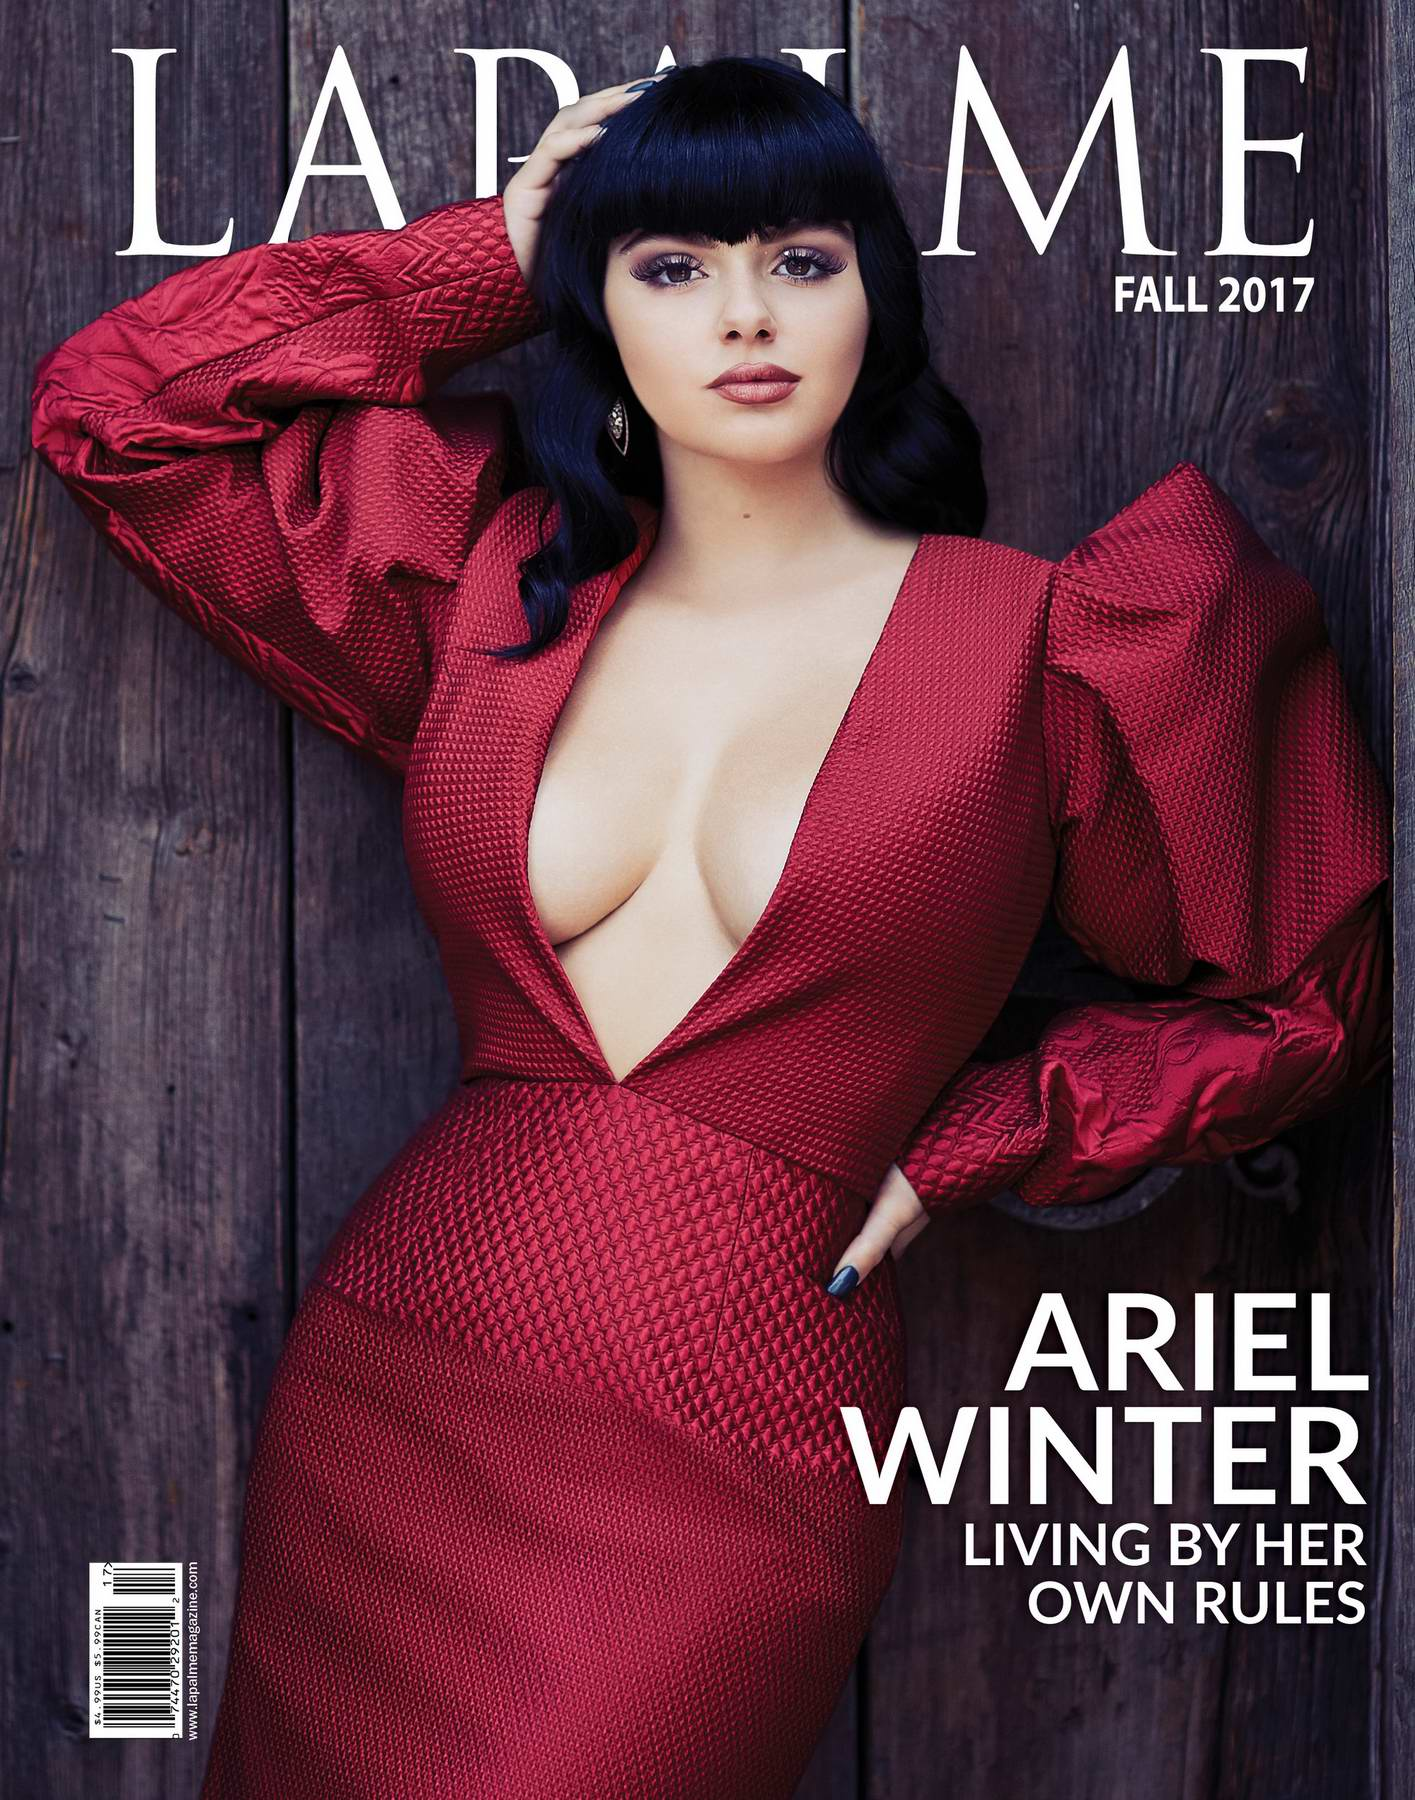 Ariel Winter in Lapalme Magazine - Fall 2017